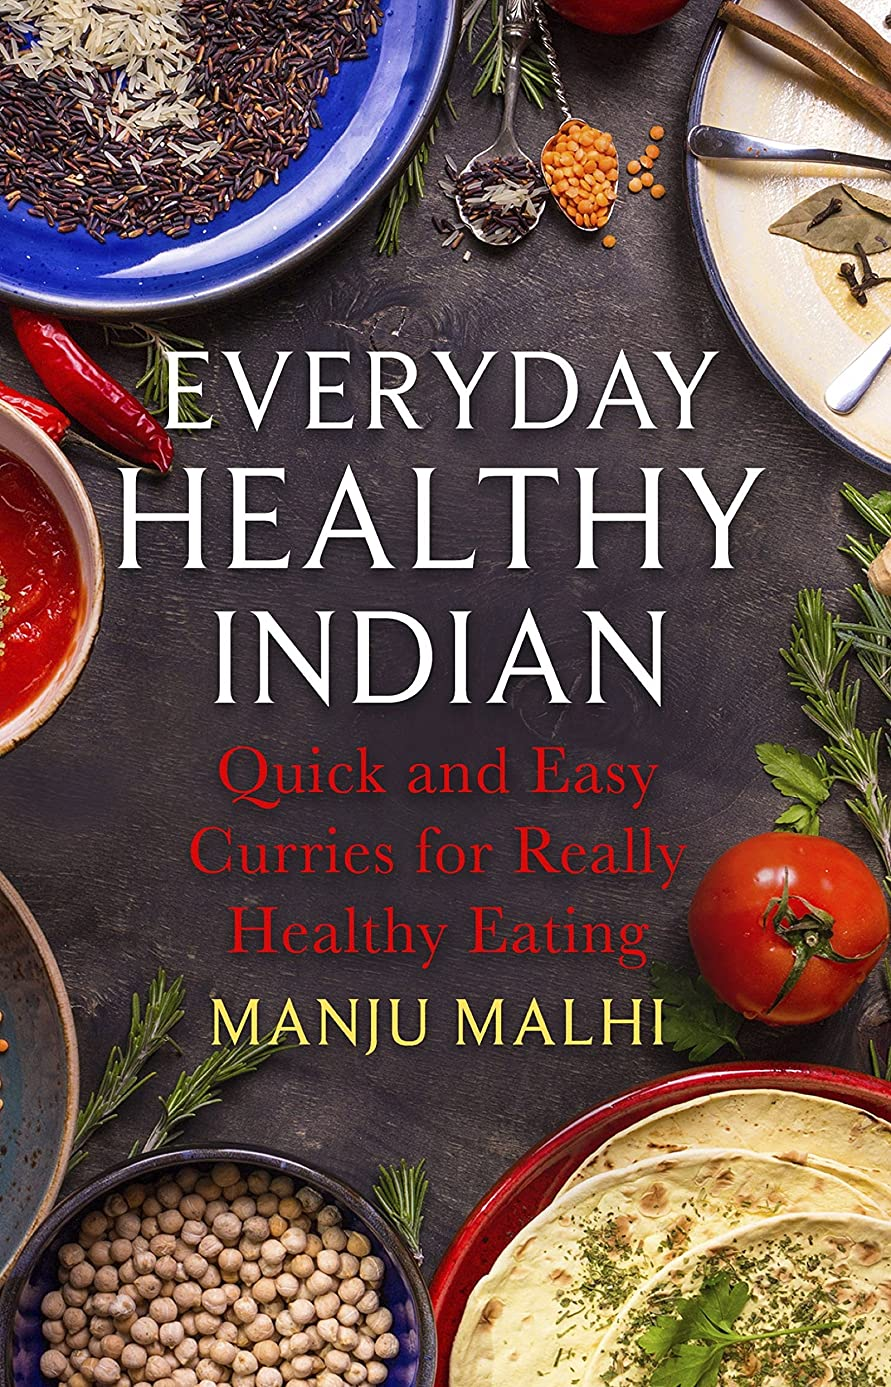 Everyday Healthy Indian Cookery: Quick and easy curries for really healthy eating (English Edition)